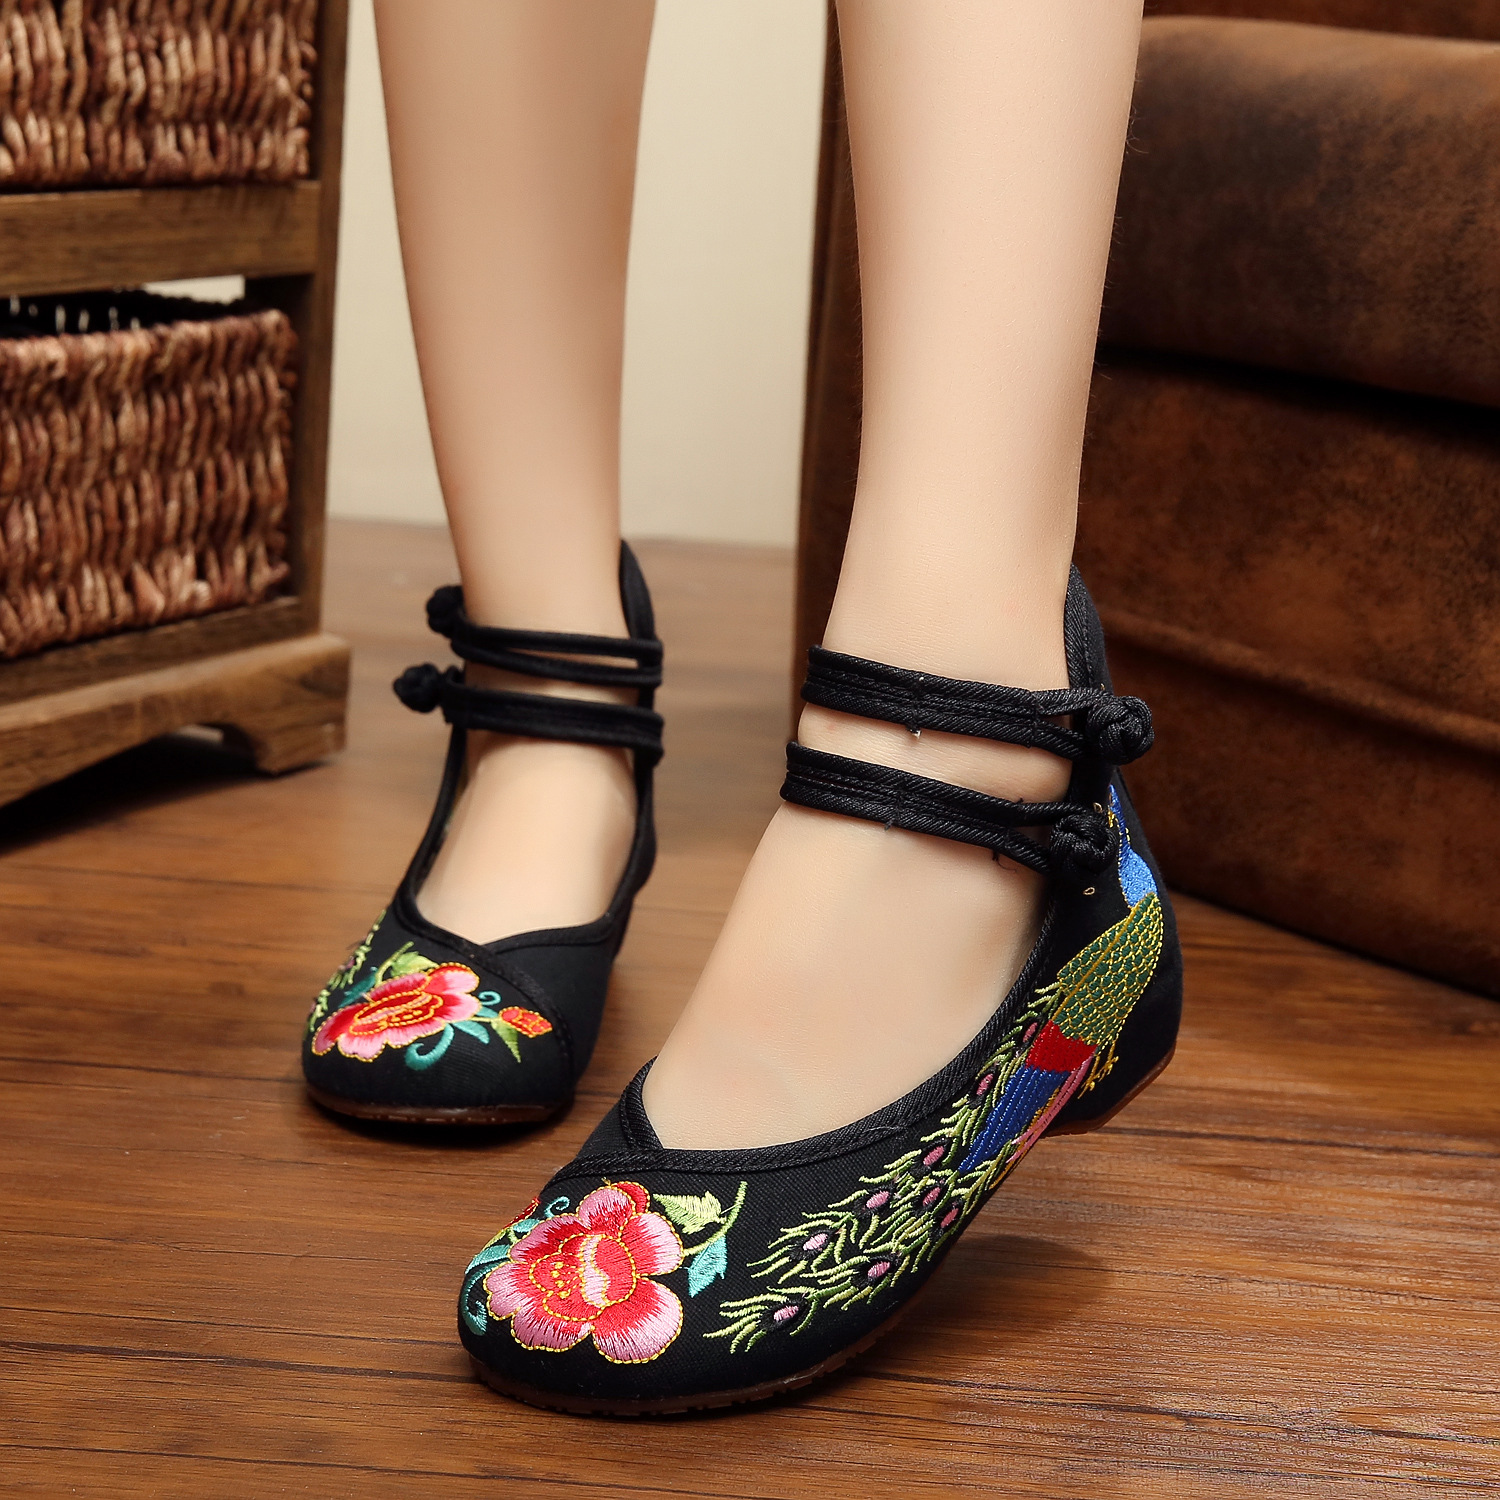 Charming Hot Size 41 Ballerinas Dancing Shoes Women Peacock Embroidery Soft Sole Casual Shoes Beijing Cloth Walking Flats old beijing peacock s tail floral canvas flats blue red chinese national comfortable soft sole embroidery cloth dance shoes